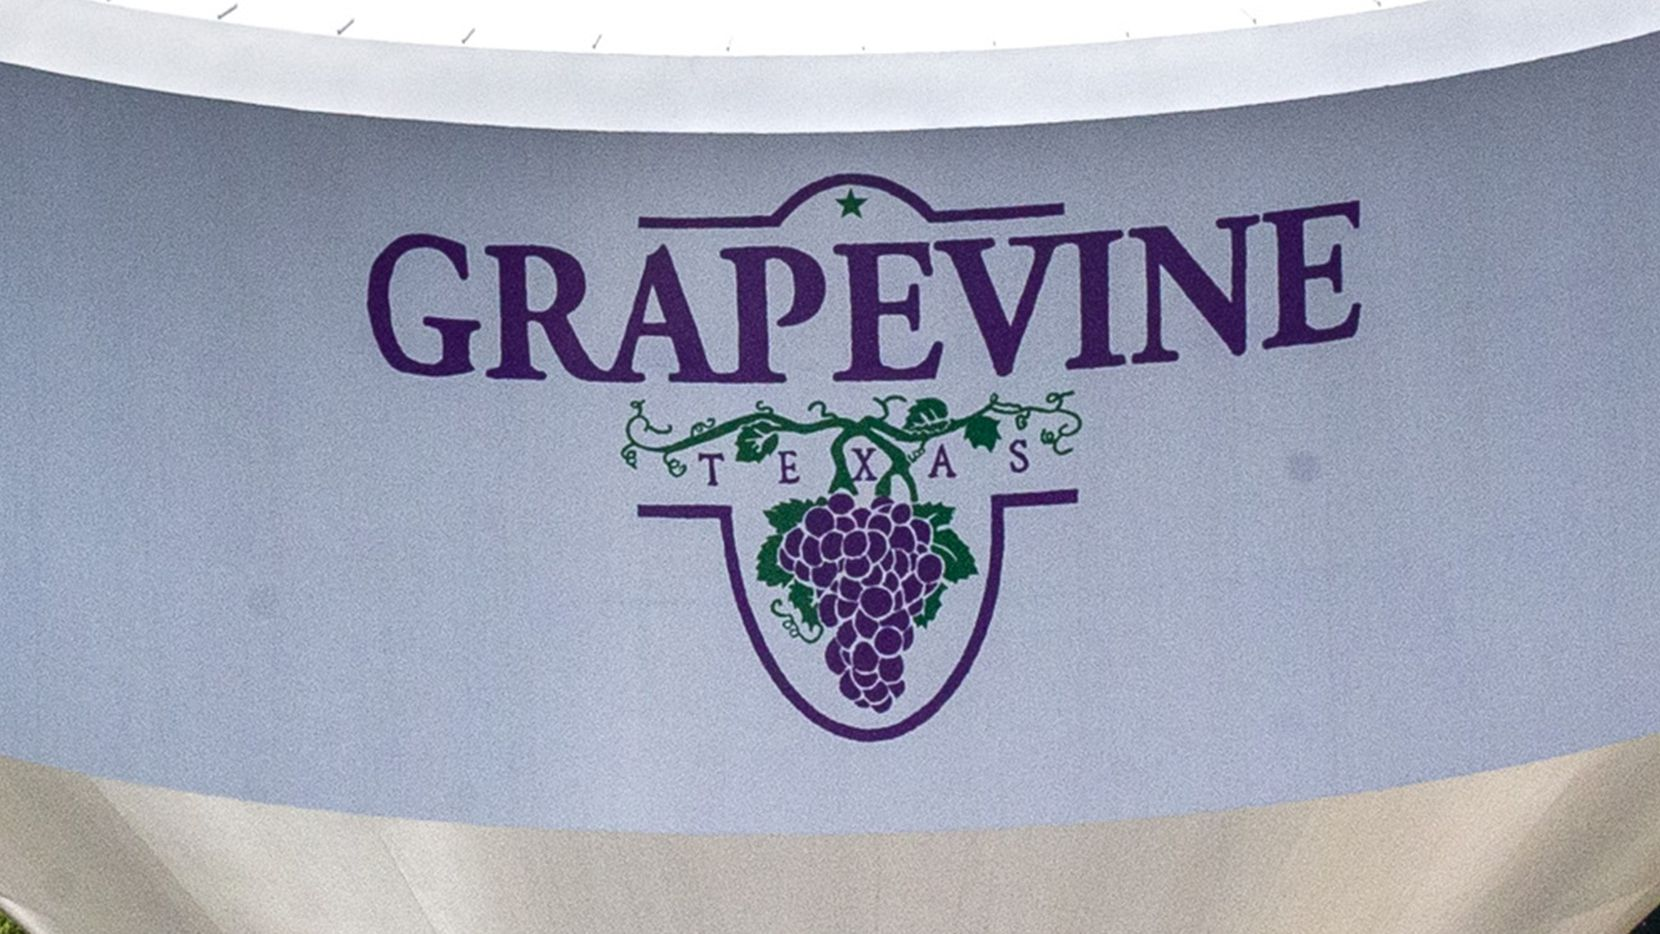 Grapevine is getting its 20th park.